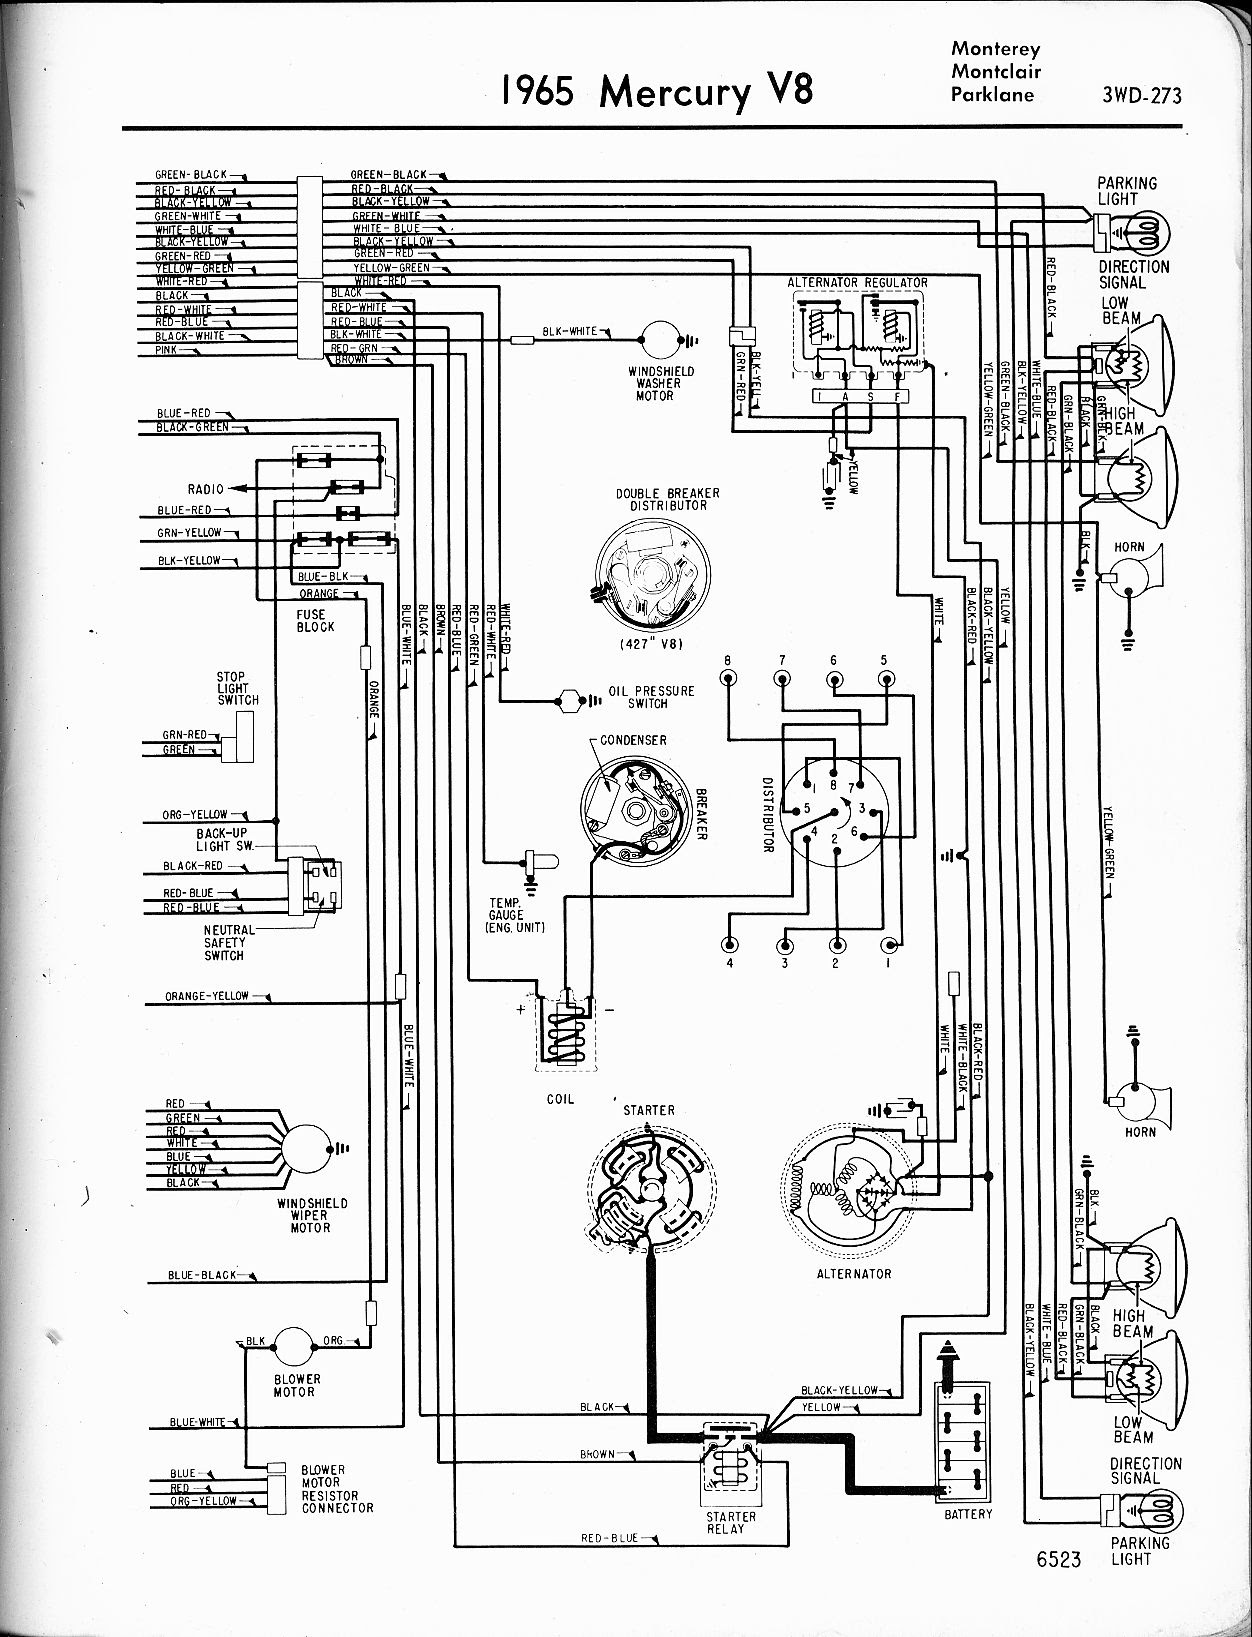 Diagram 1999 Mercury Cougar Wiring Diagram Full Version Hd Quality Wiring Diagram Tebodiagram Yti Fr